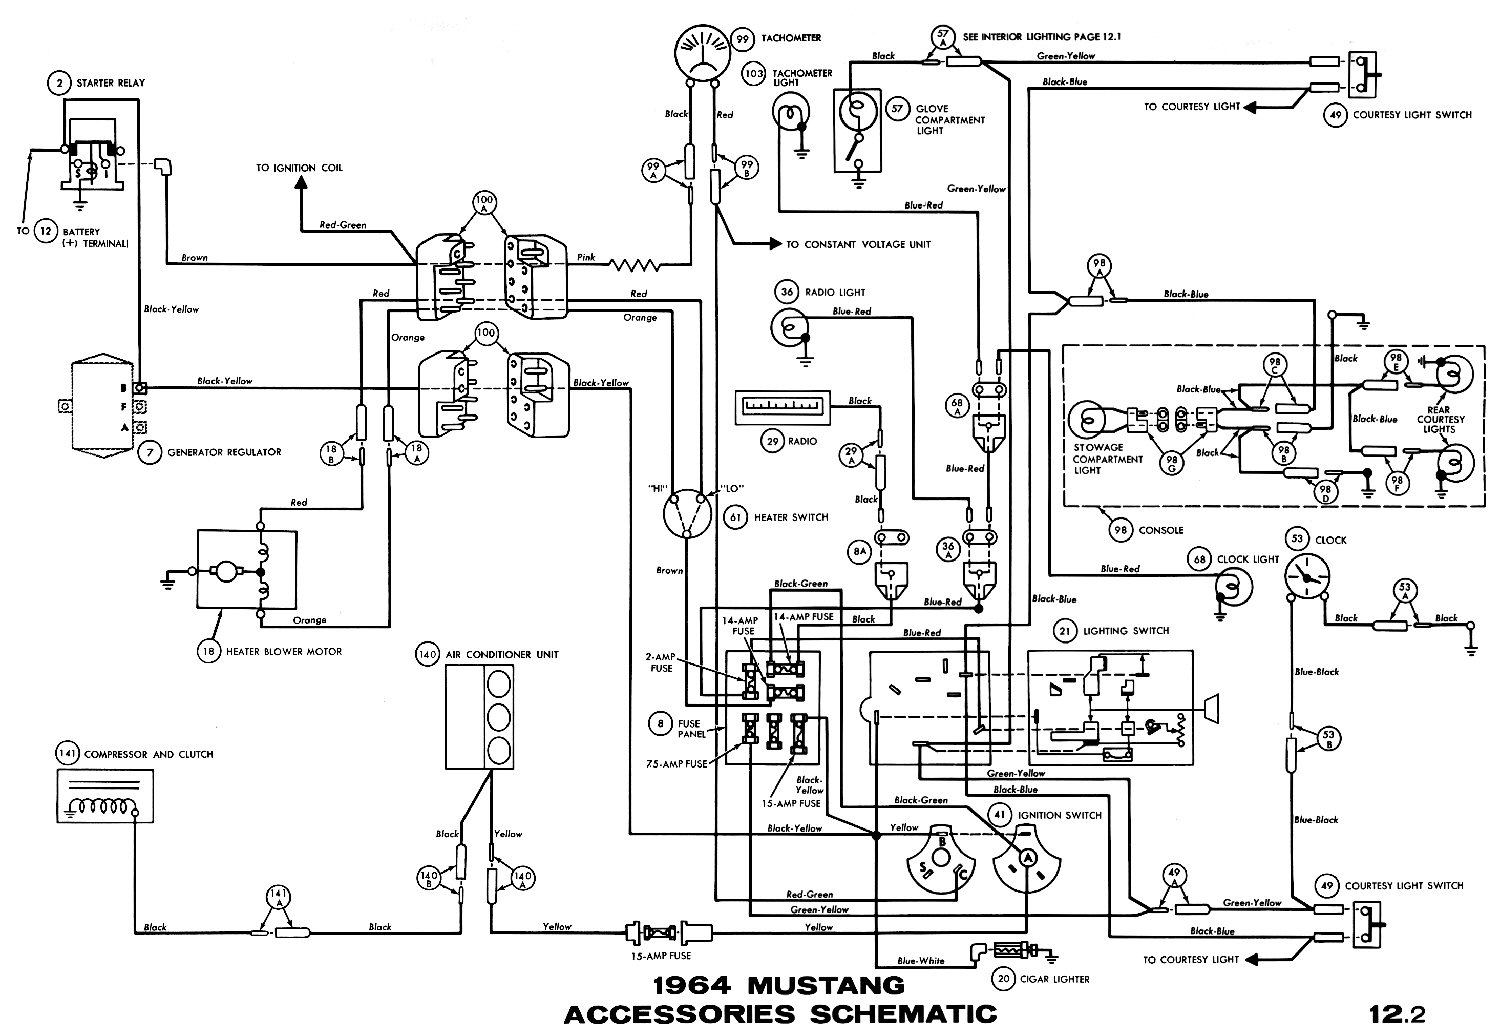 1964 mustang wiring diagrams average joe restoration air conditioner